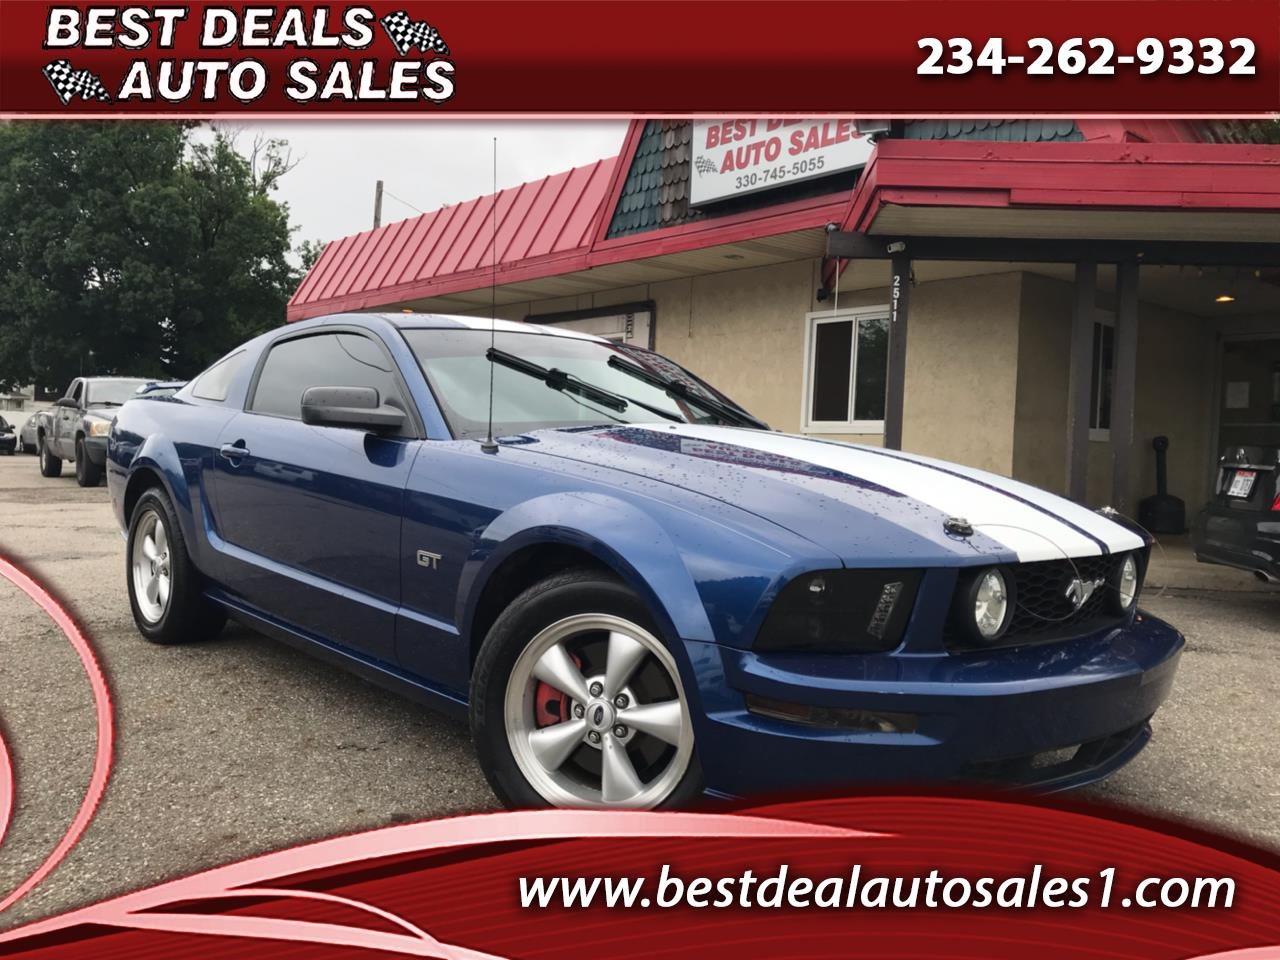 Best Auto Deals >> Used Cars For Sale Akron Oh 44314 Best Deals Auto Sales